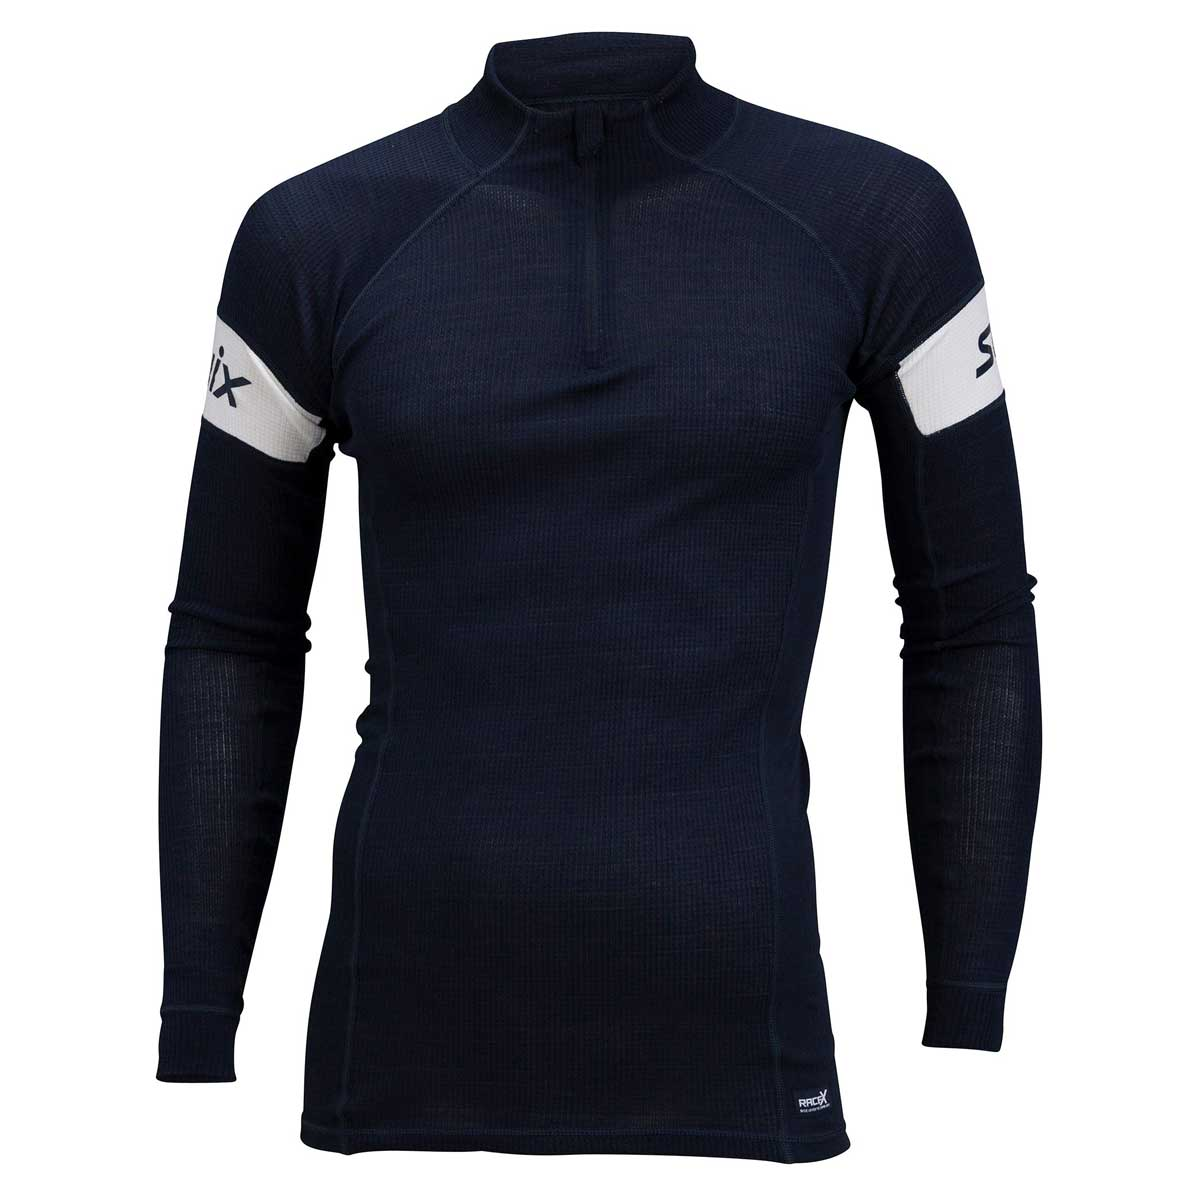 Swix Men's RaceX Warm 1/2 Zip Top in Dark Navy